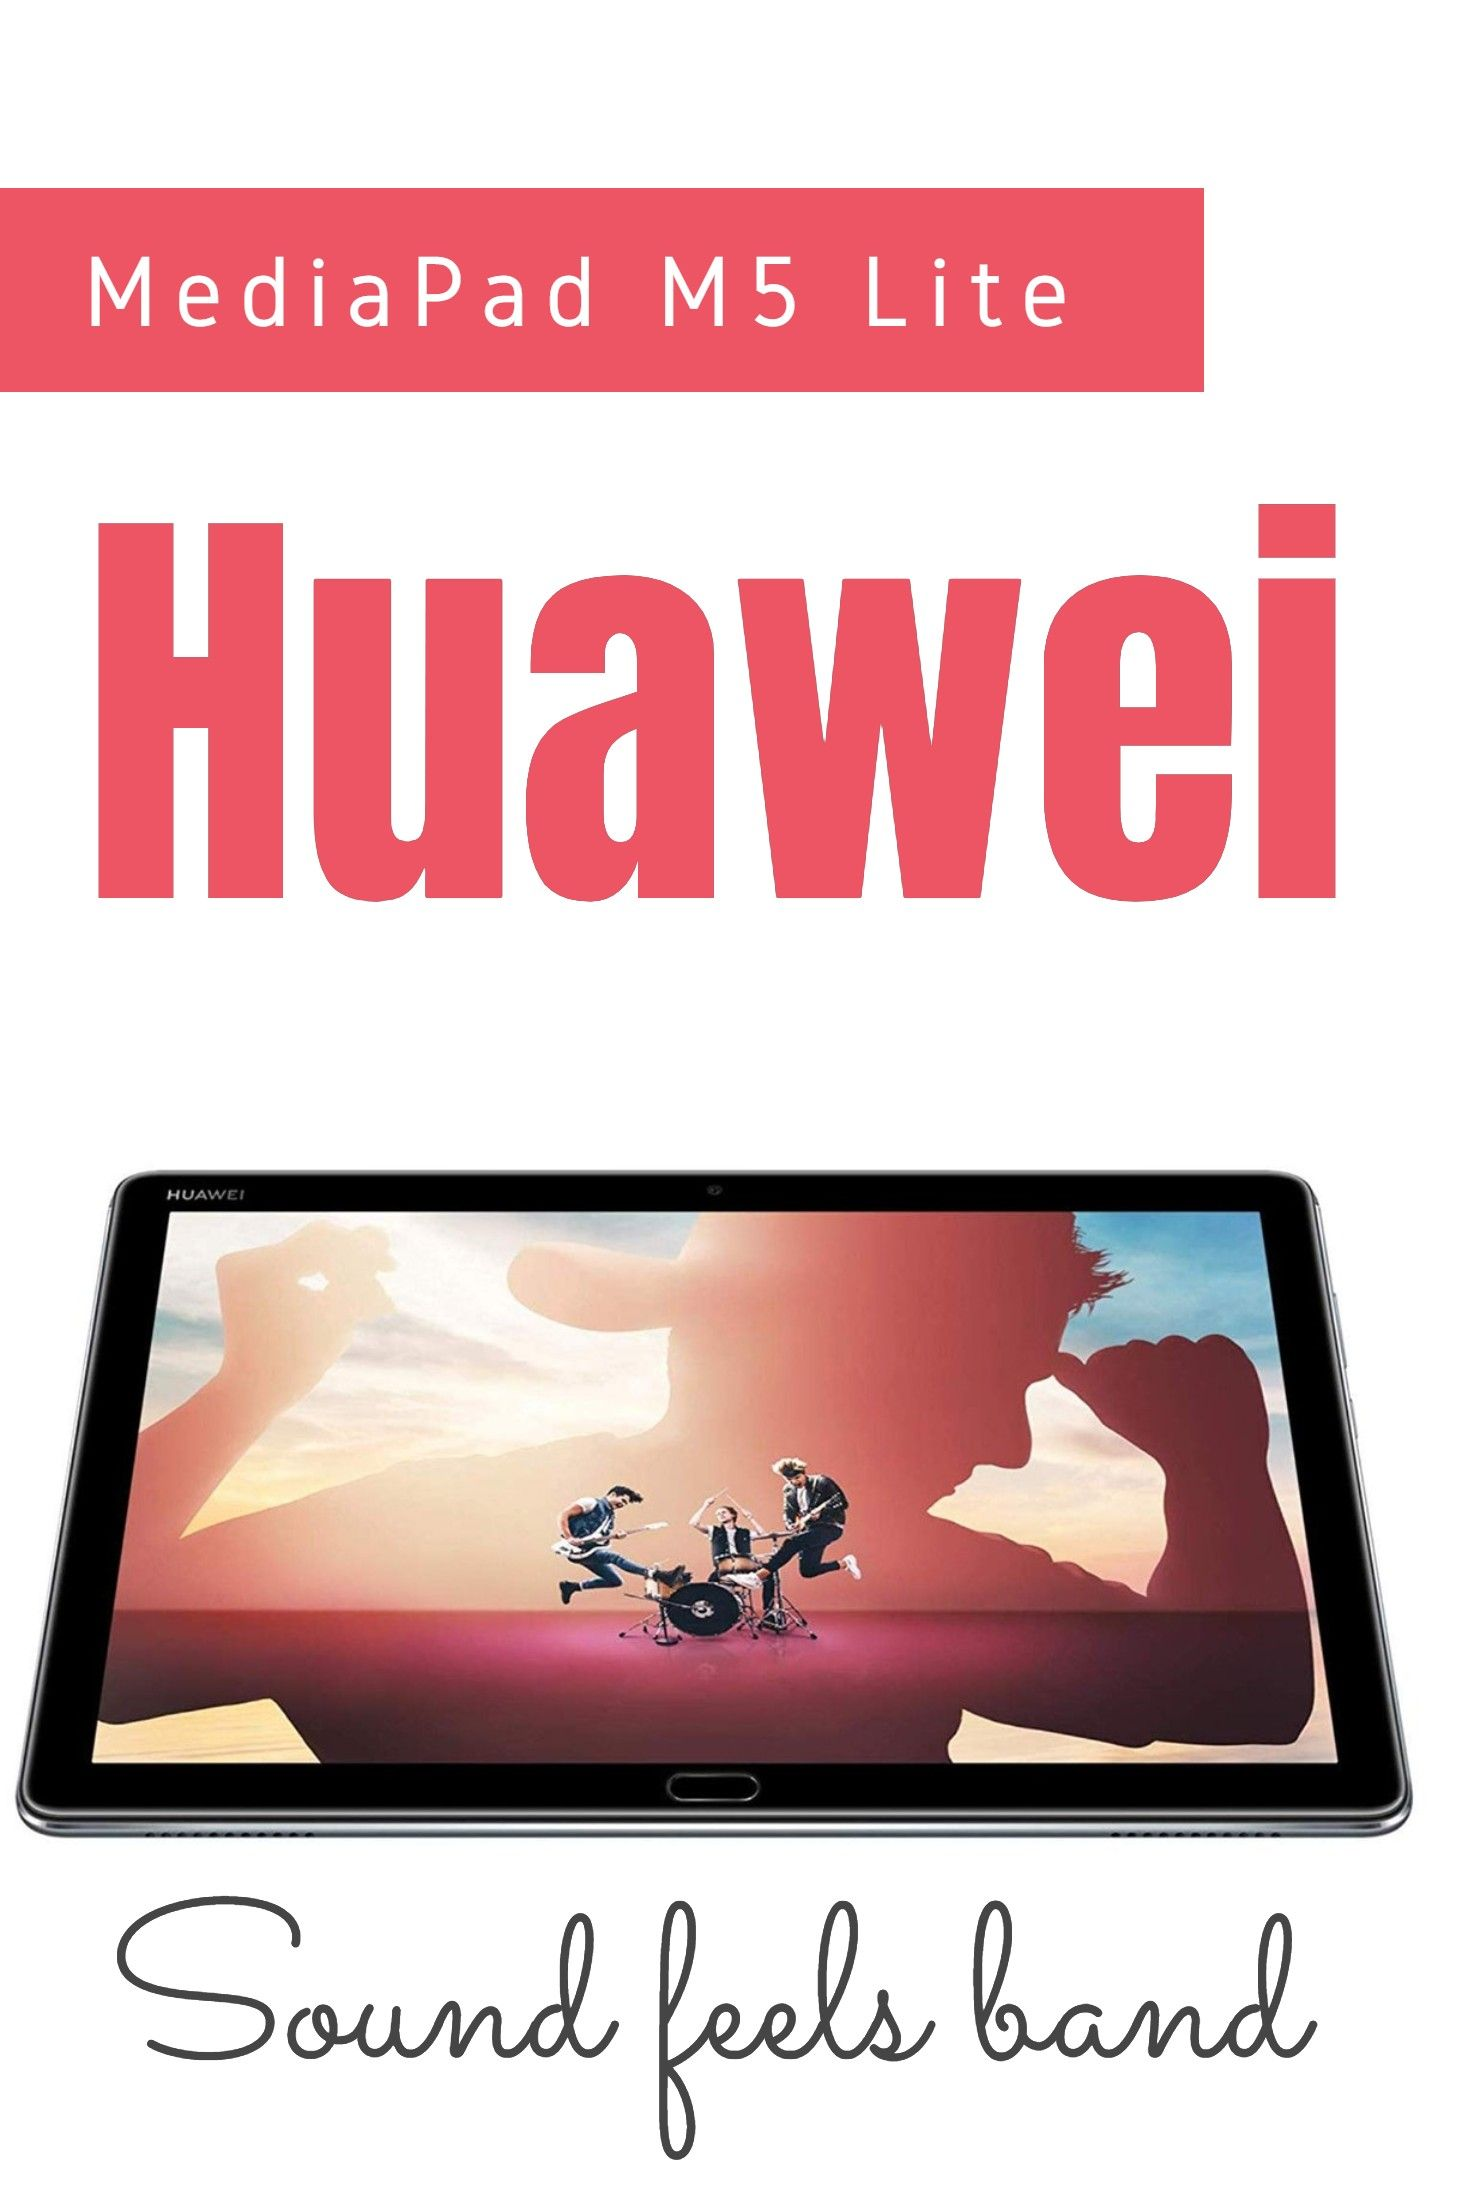 Huawei Mediapad M5 Lite Android Tablet 10 1 Fhd Display Octa Core Quick Charge Quad Harman Kardon Tuned Speakers M Pen Lite S With Images Huawei Tablet 10 Android Tablets